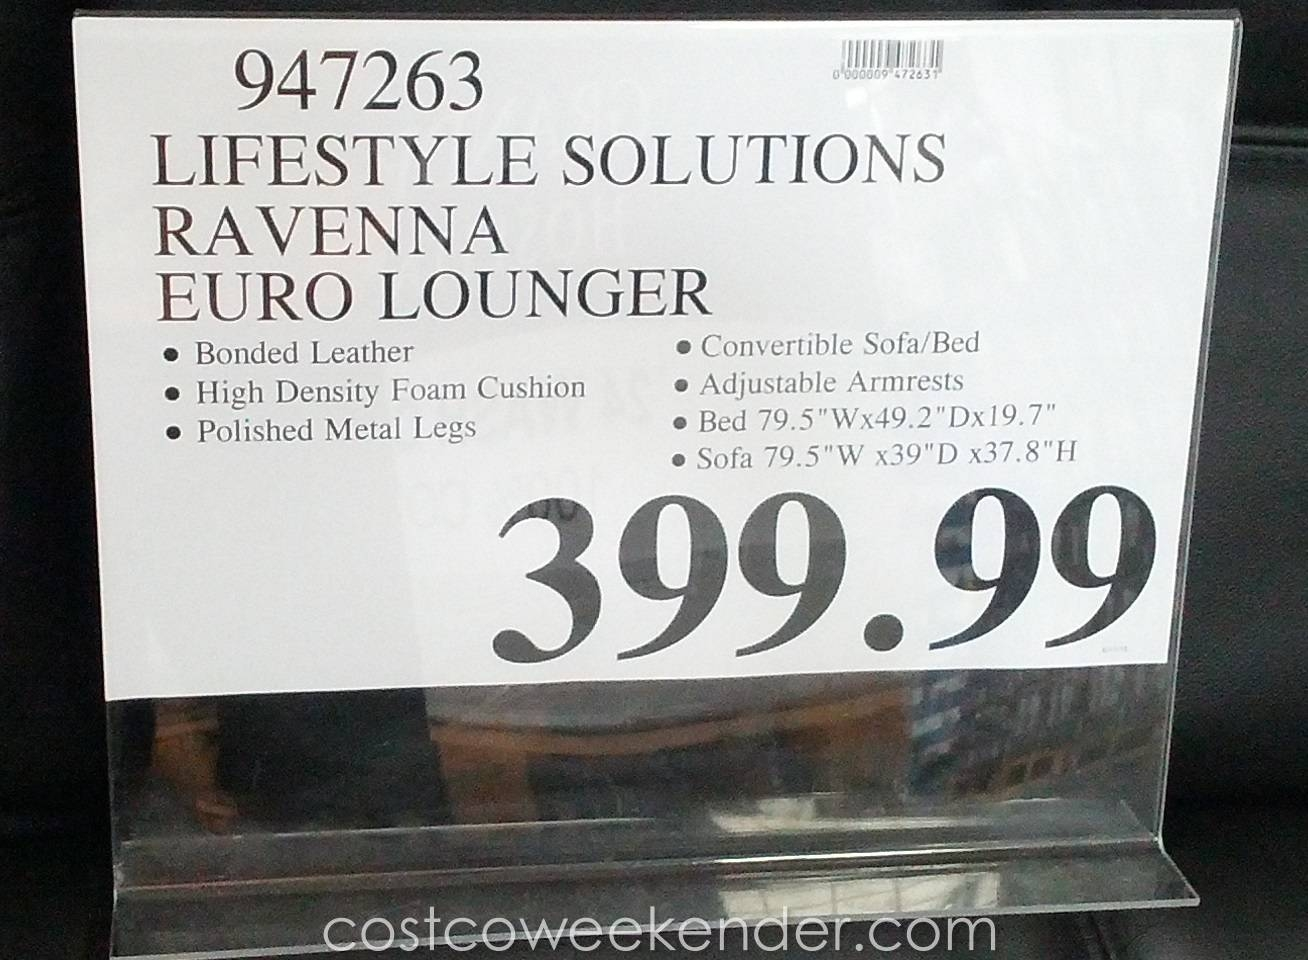 Leather Futon Costco | Roselawnlutheran intended for Euro Loungers (Image 8 of 15)